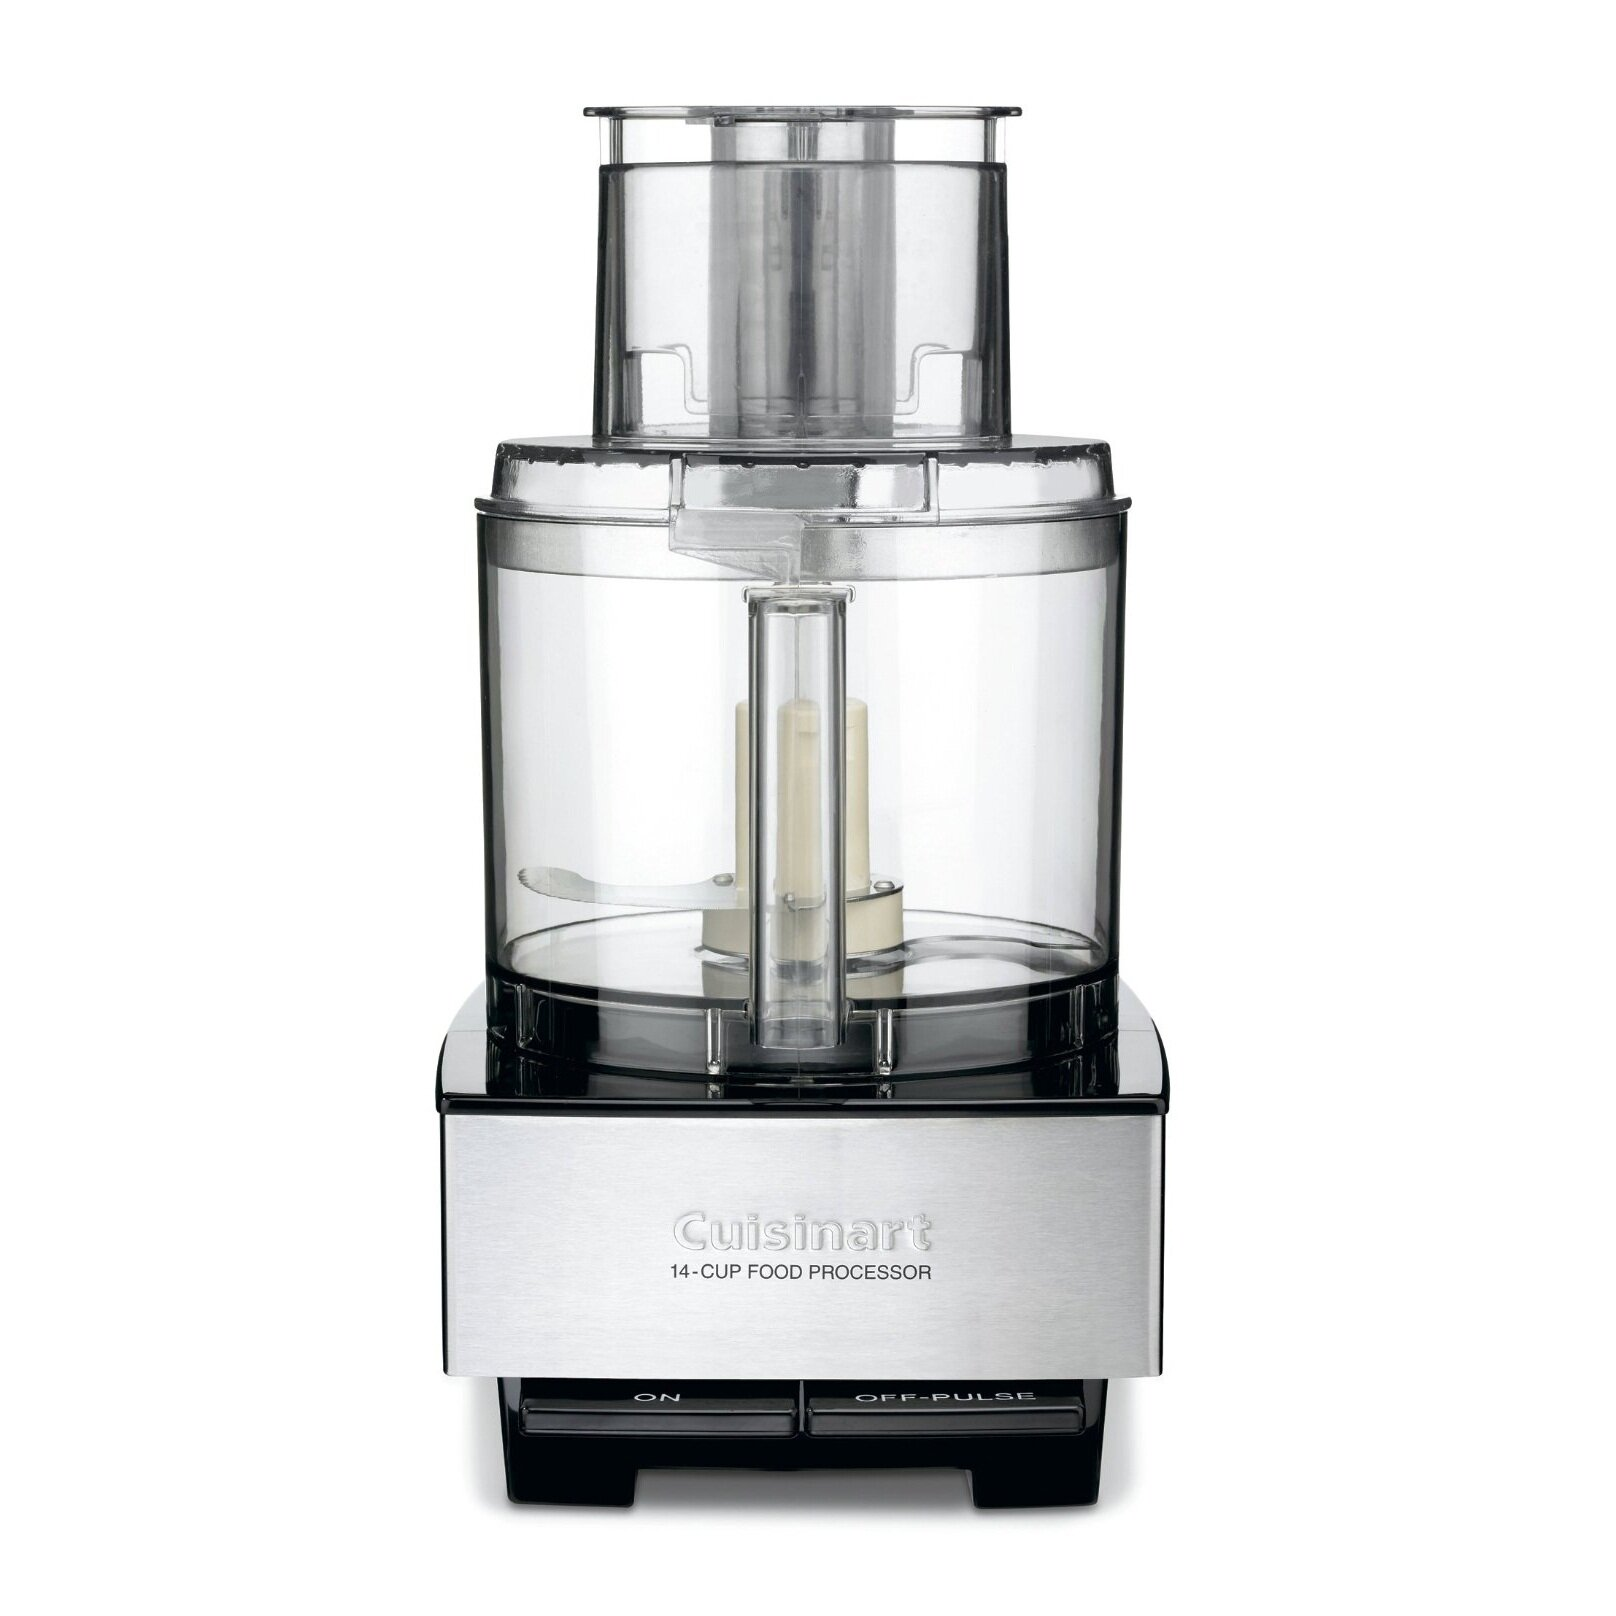 Cuisinart smartpower duet blender and food processor - 14 Cup Food Processor In Brushed Stainless Steel